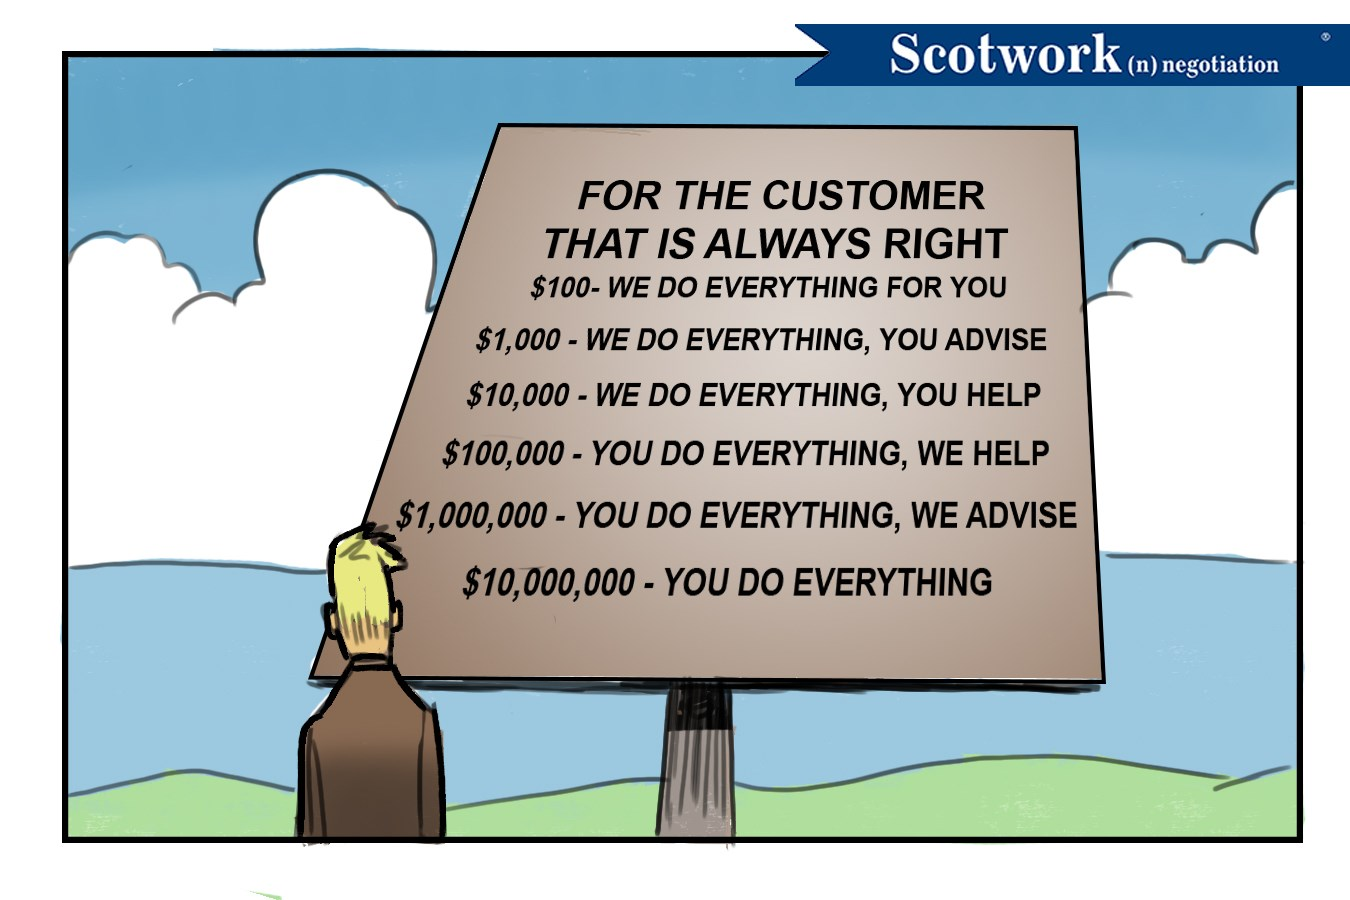 Scotwork_Comic_2018_05_21 Agency of no.jpg